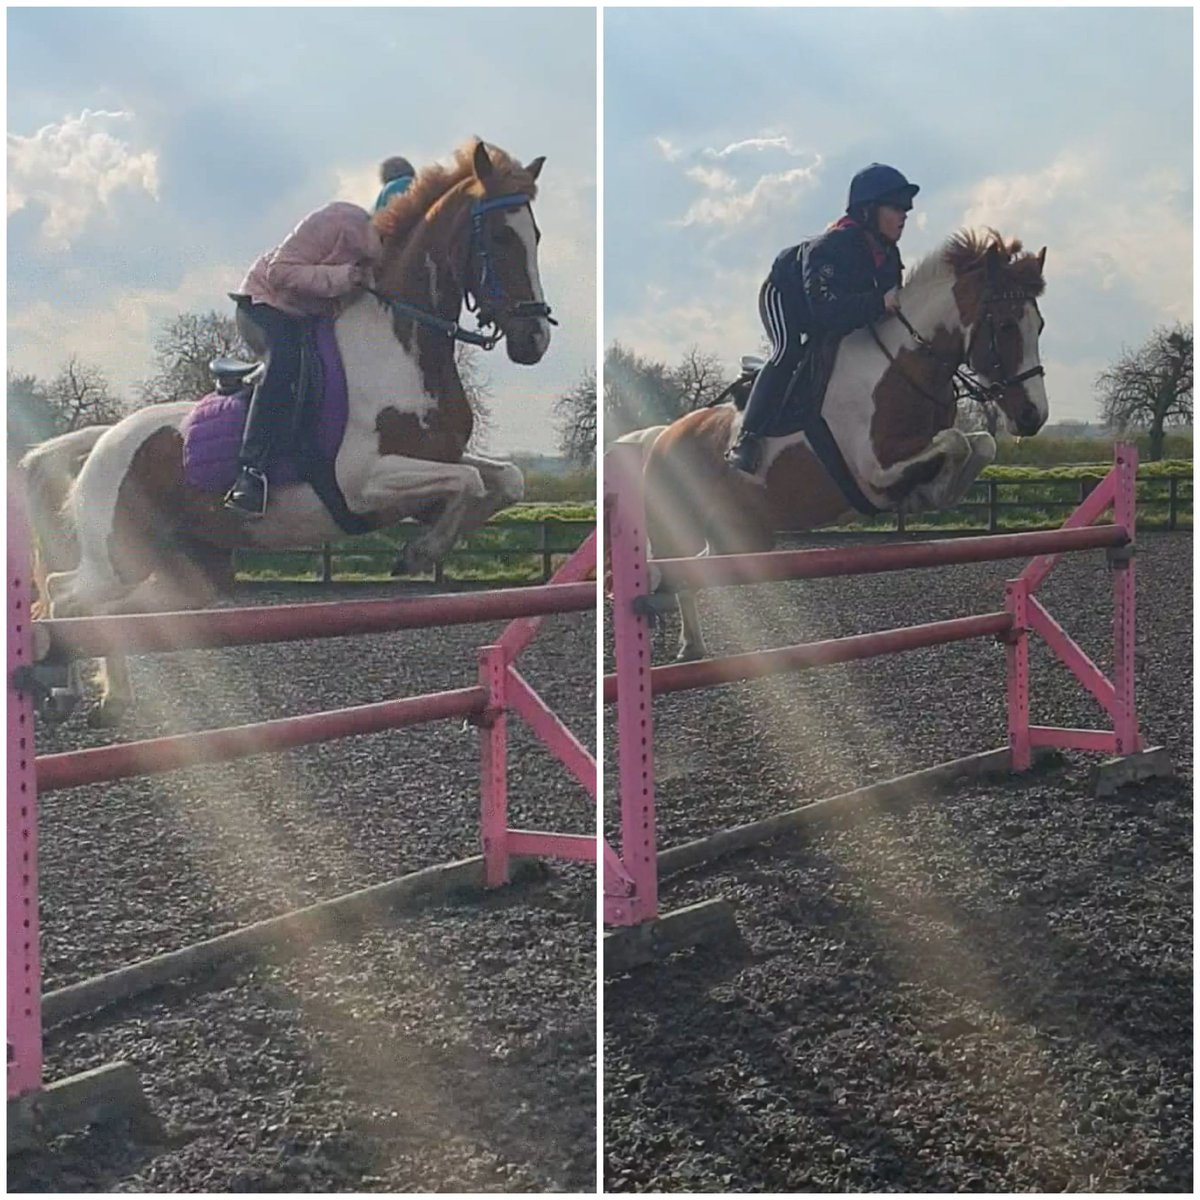 FOR SALE  2 very competitive ponys that will jump anything you put in front of them. Unfortunately my kids are getting to big and need some bigger ones. Dm me for details